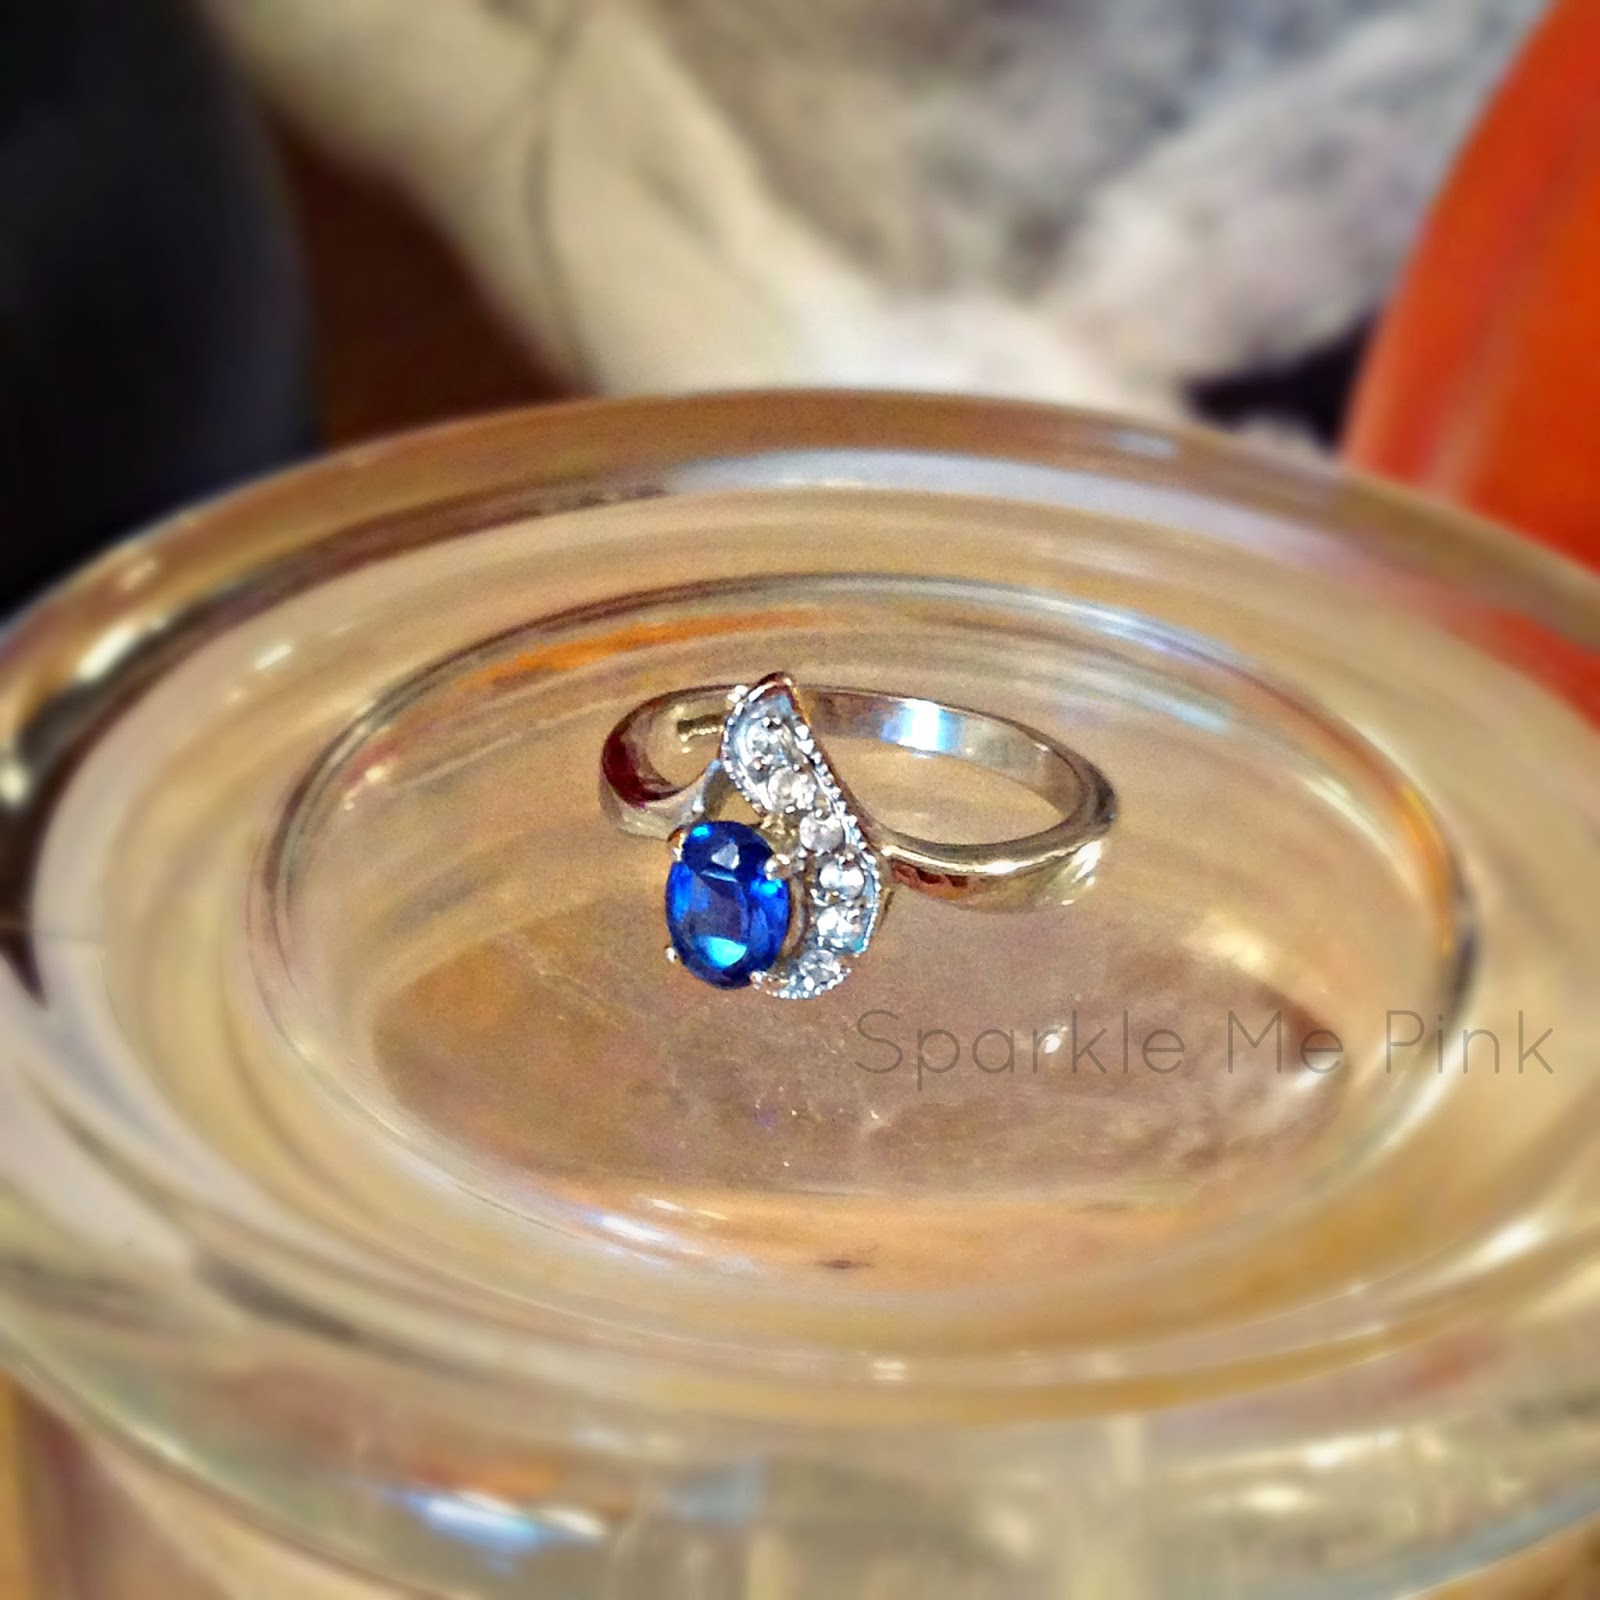 Sparkle me pink diamond candle ring reveal